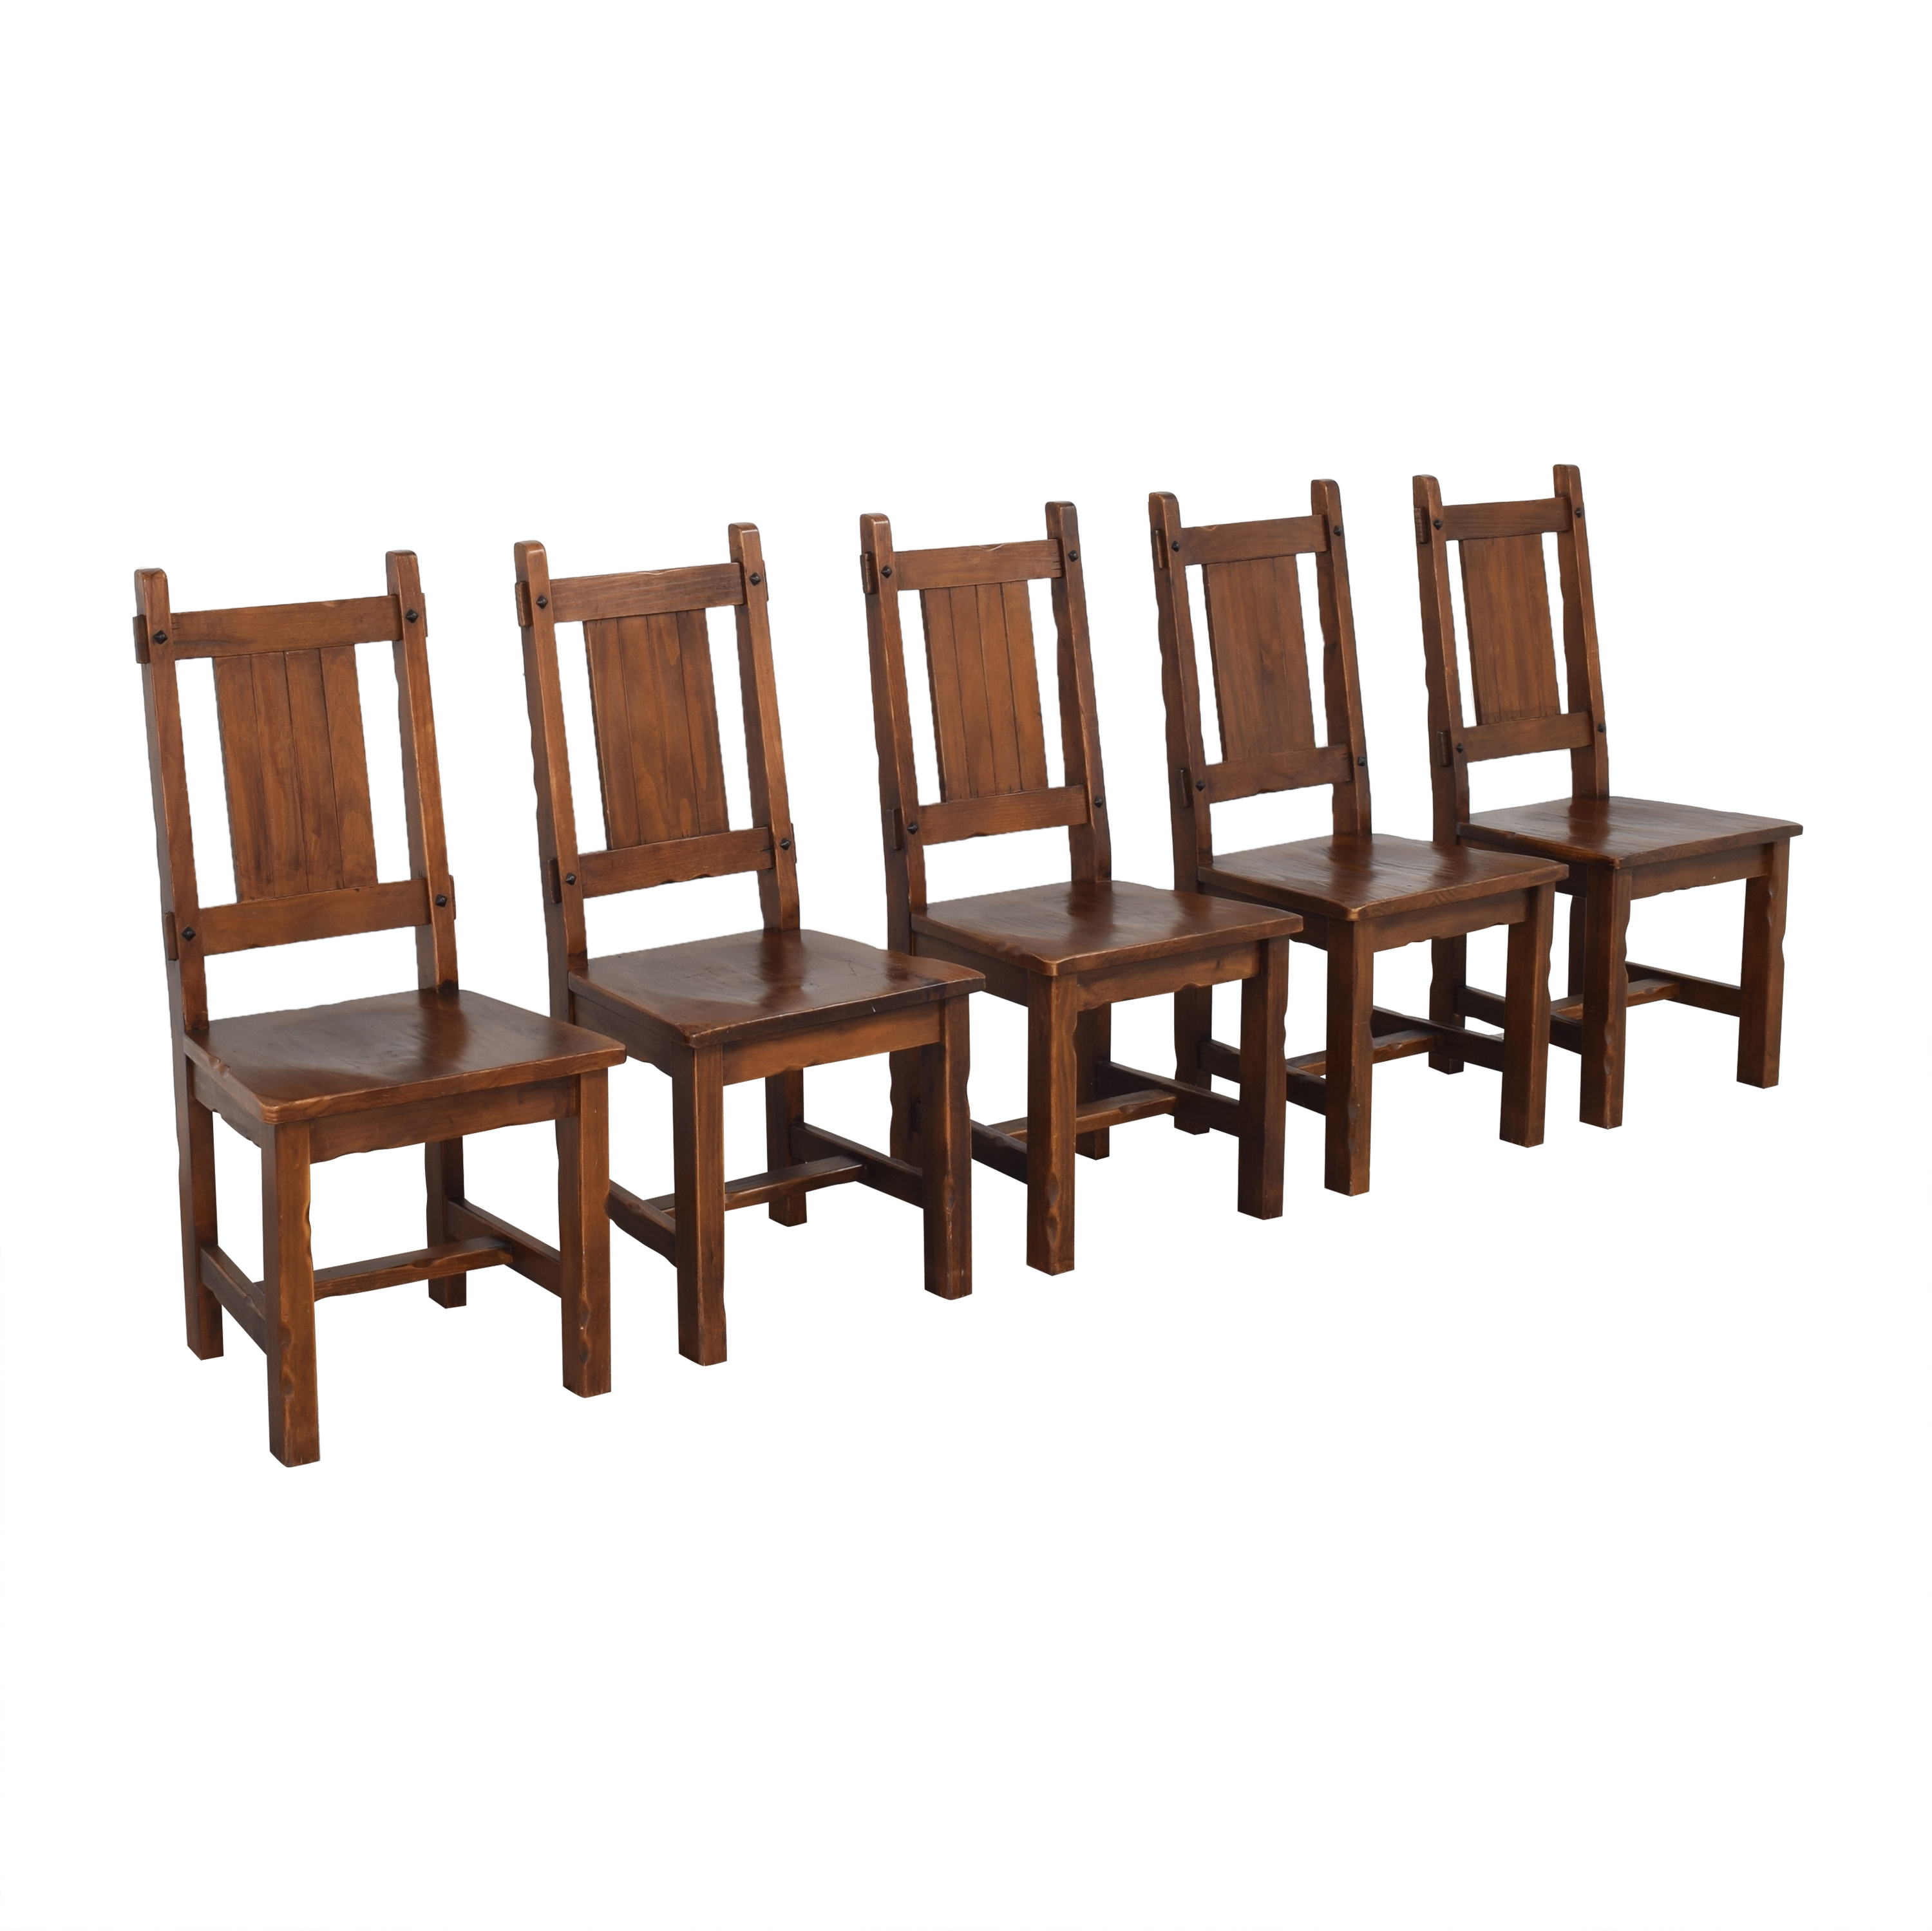 shop Pier 1 Rustic Dining Chairs Pier 1